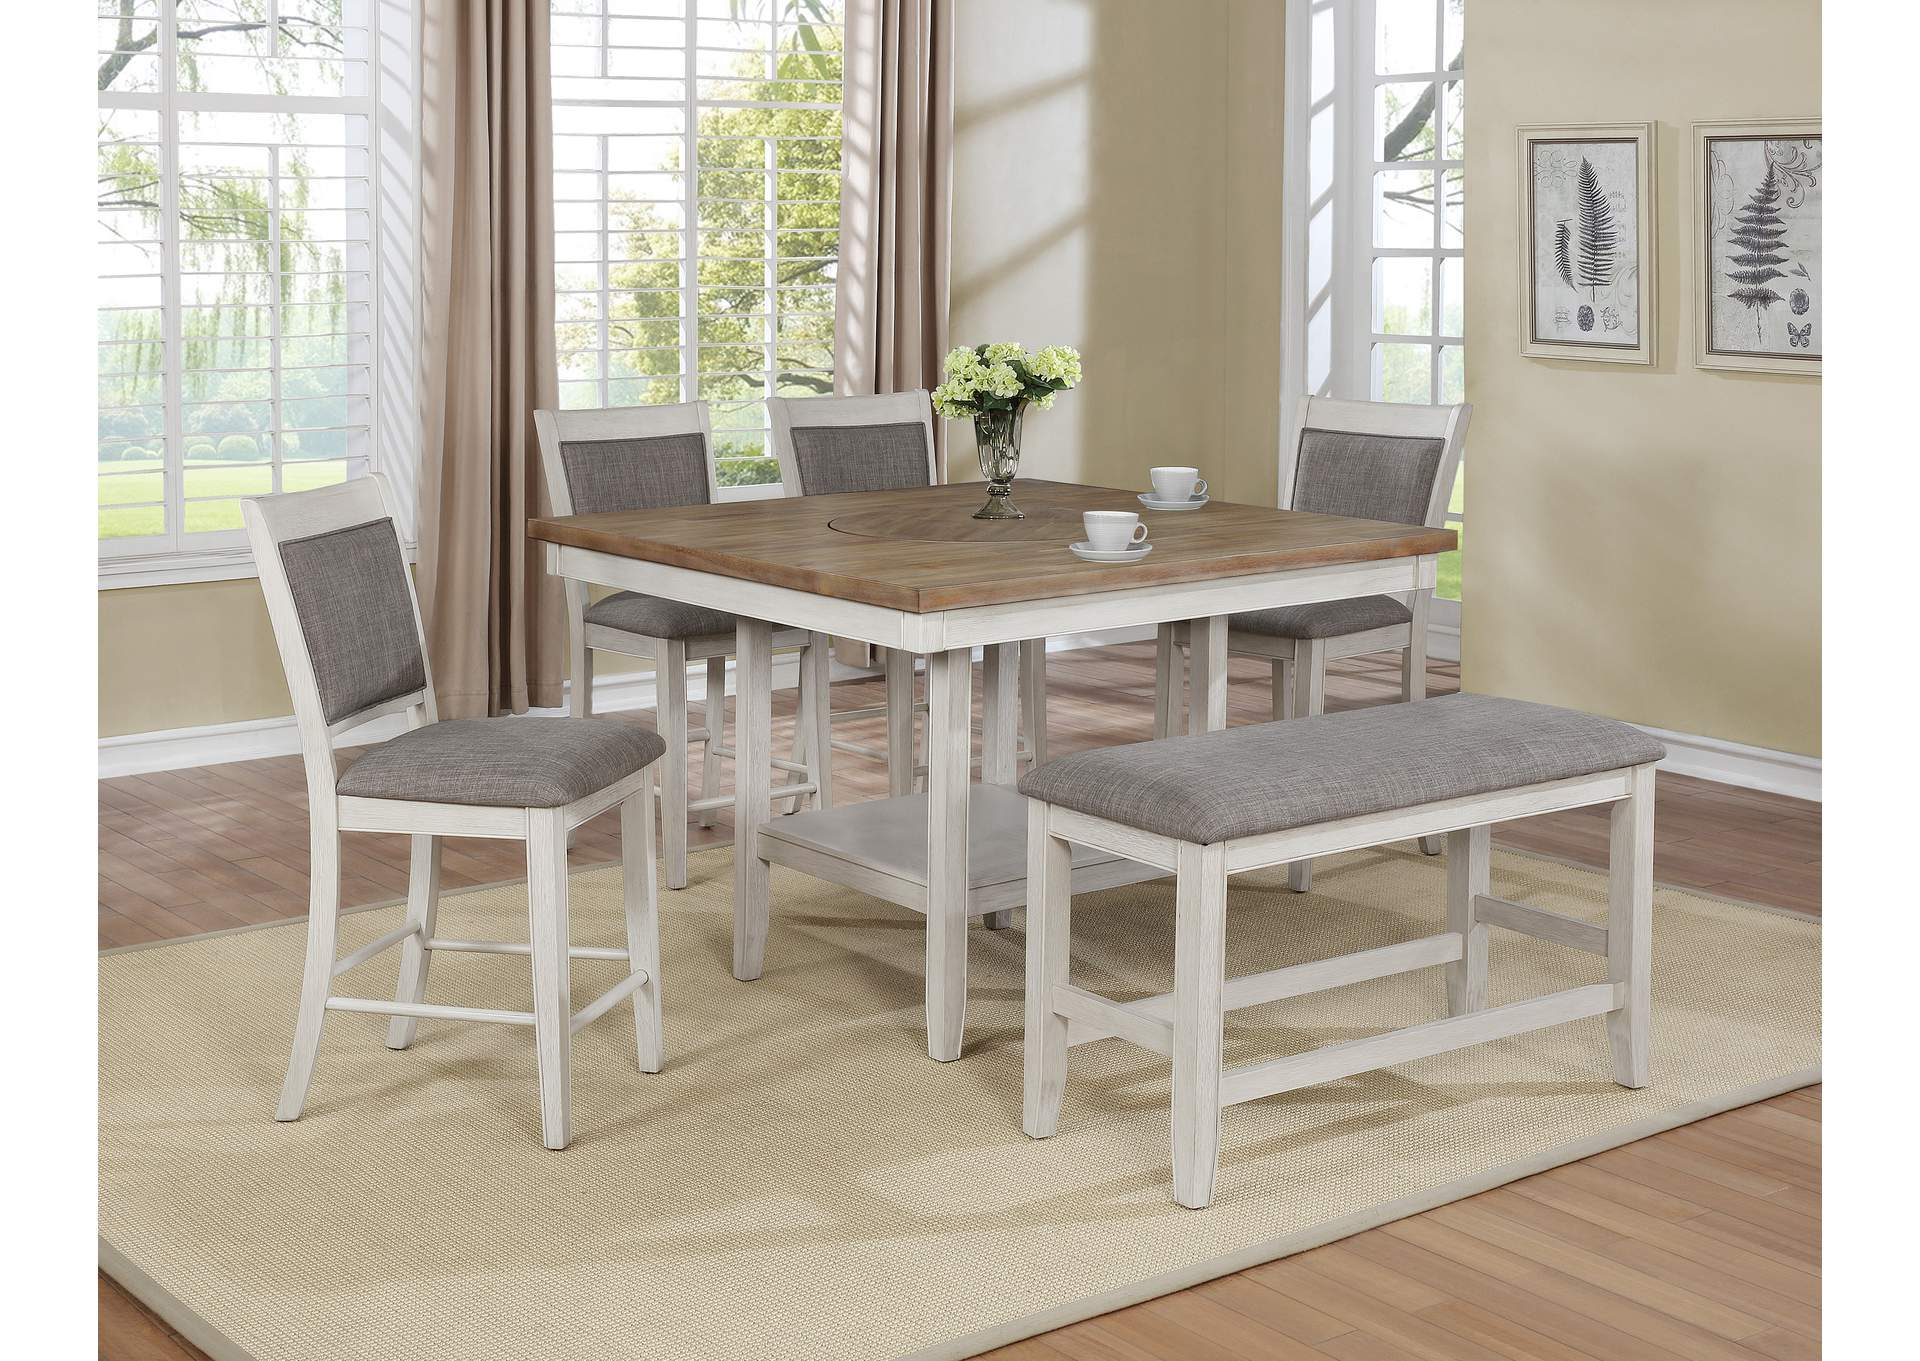 Pleasant Kirk Imports Fulton White 5 Piece Dining Table Set Dining Machost Co Dining Chair Design Ideas Machostcouk